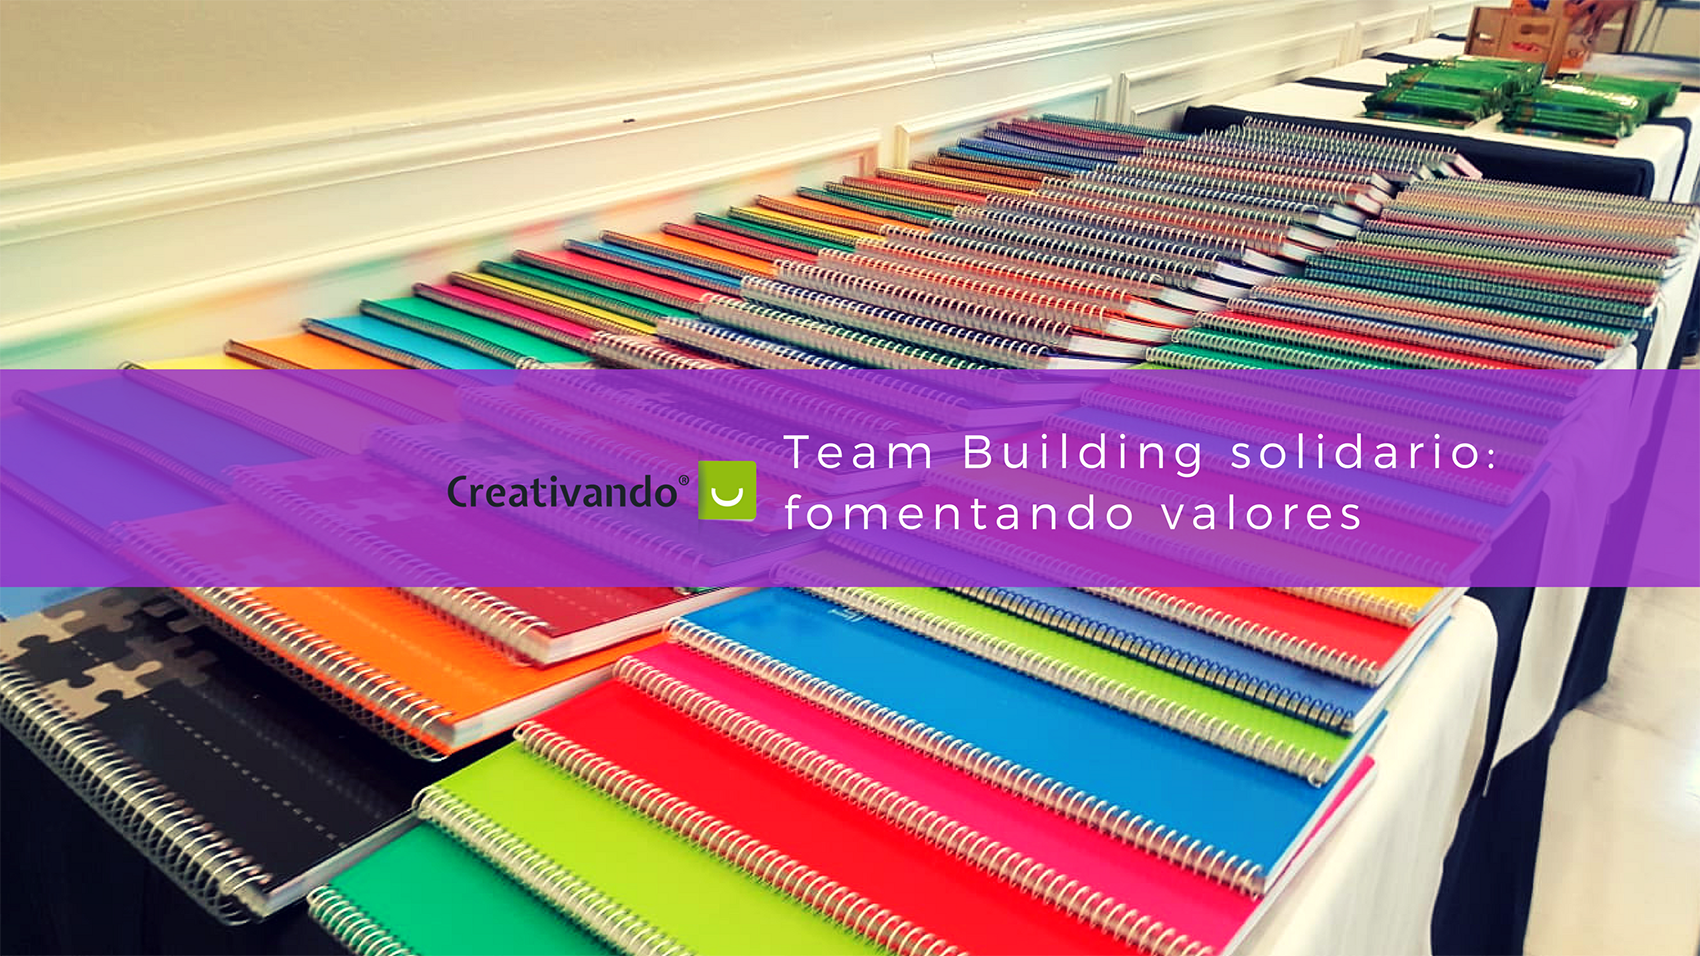 Team Building Solidario